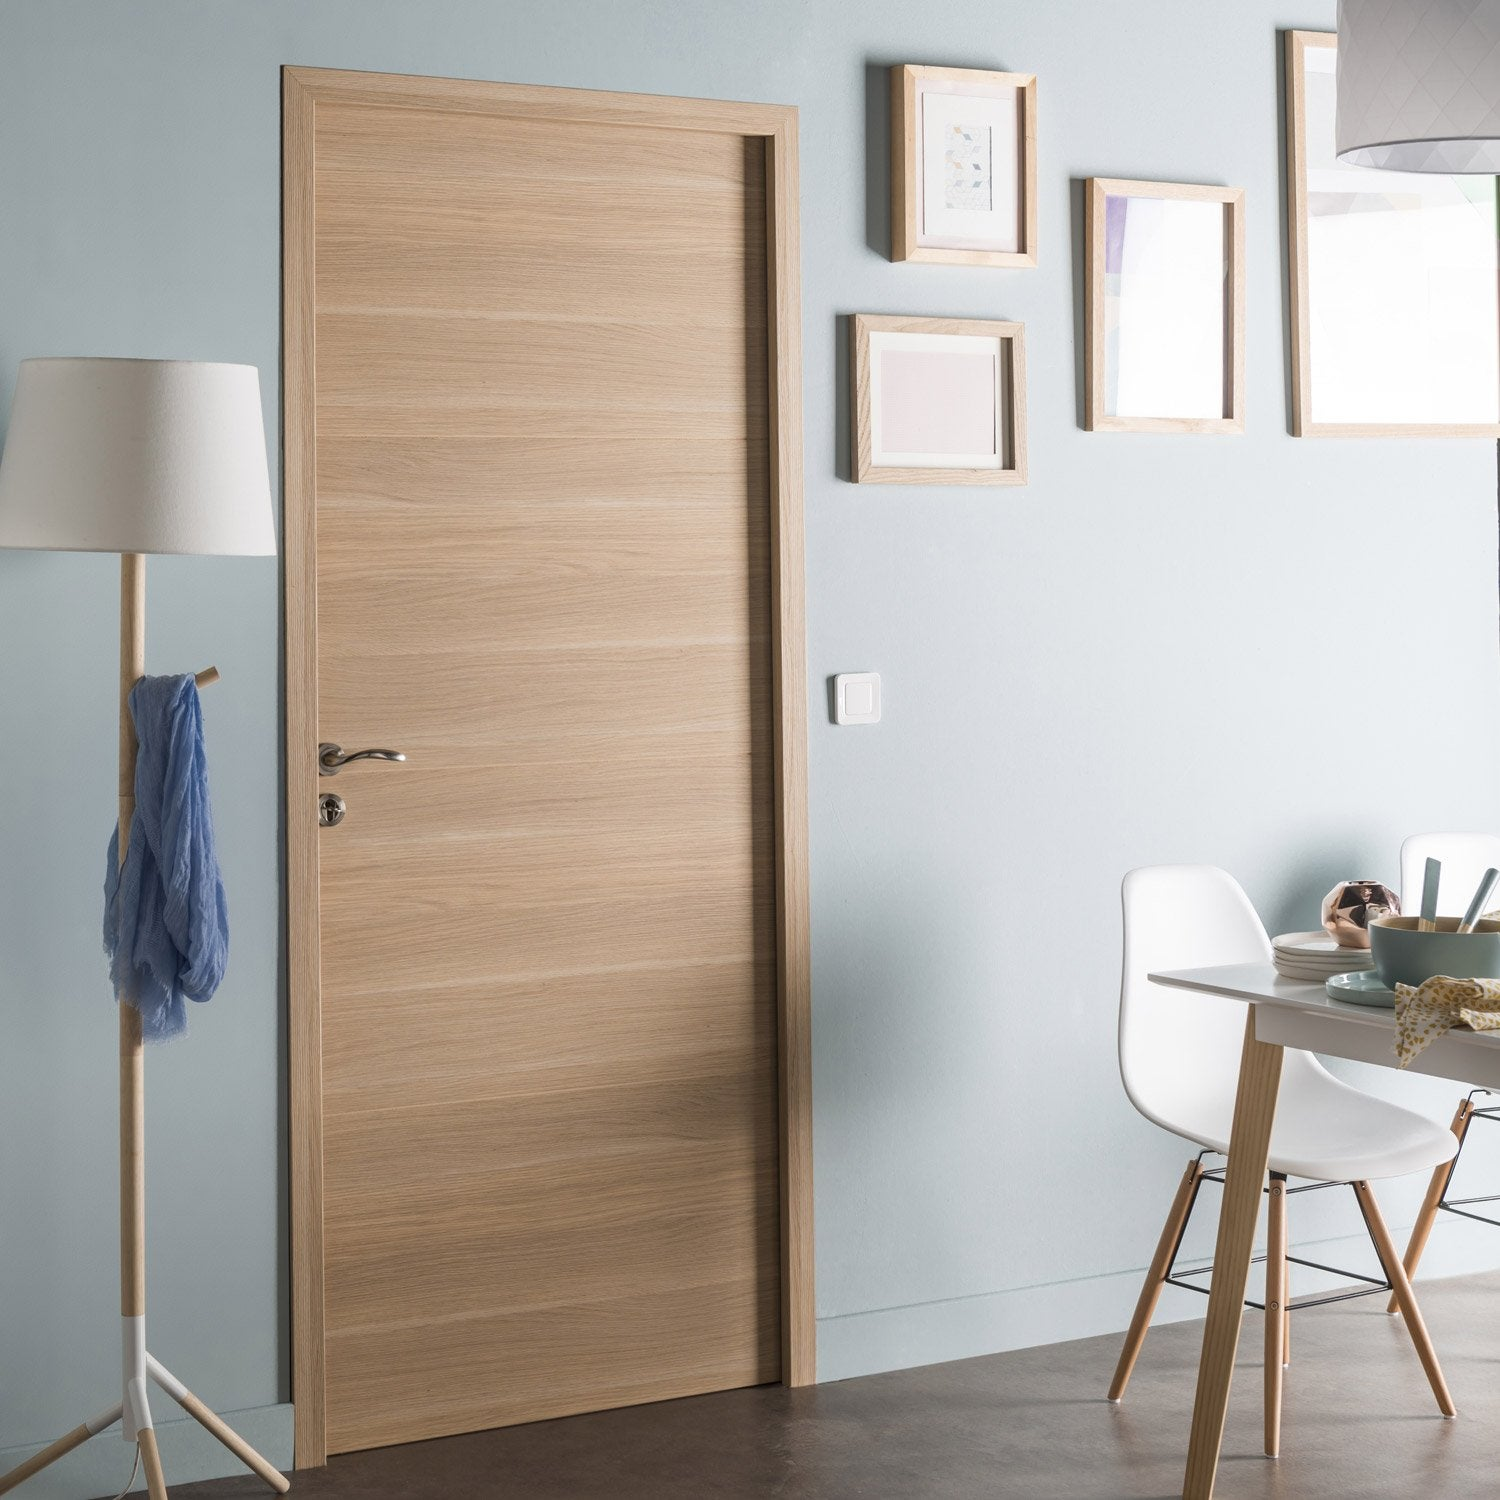 Bloc porte rev tu madrid 2 artens x cm - Porte interieur point p ...